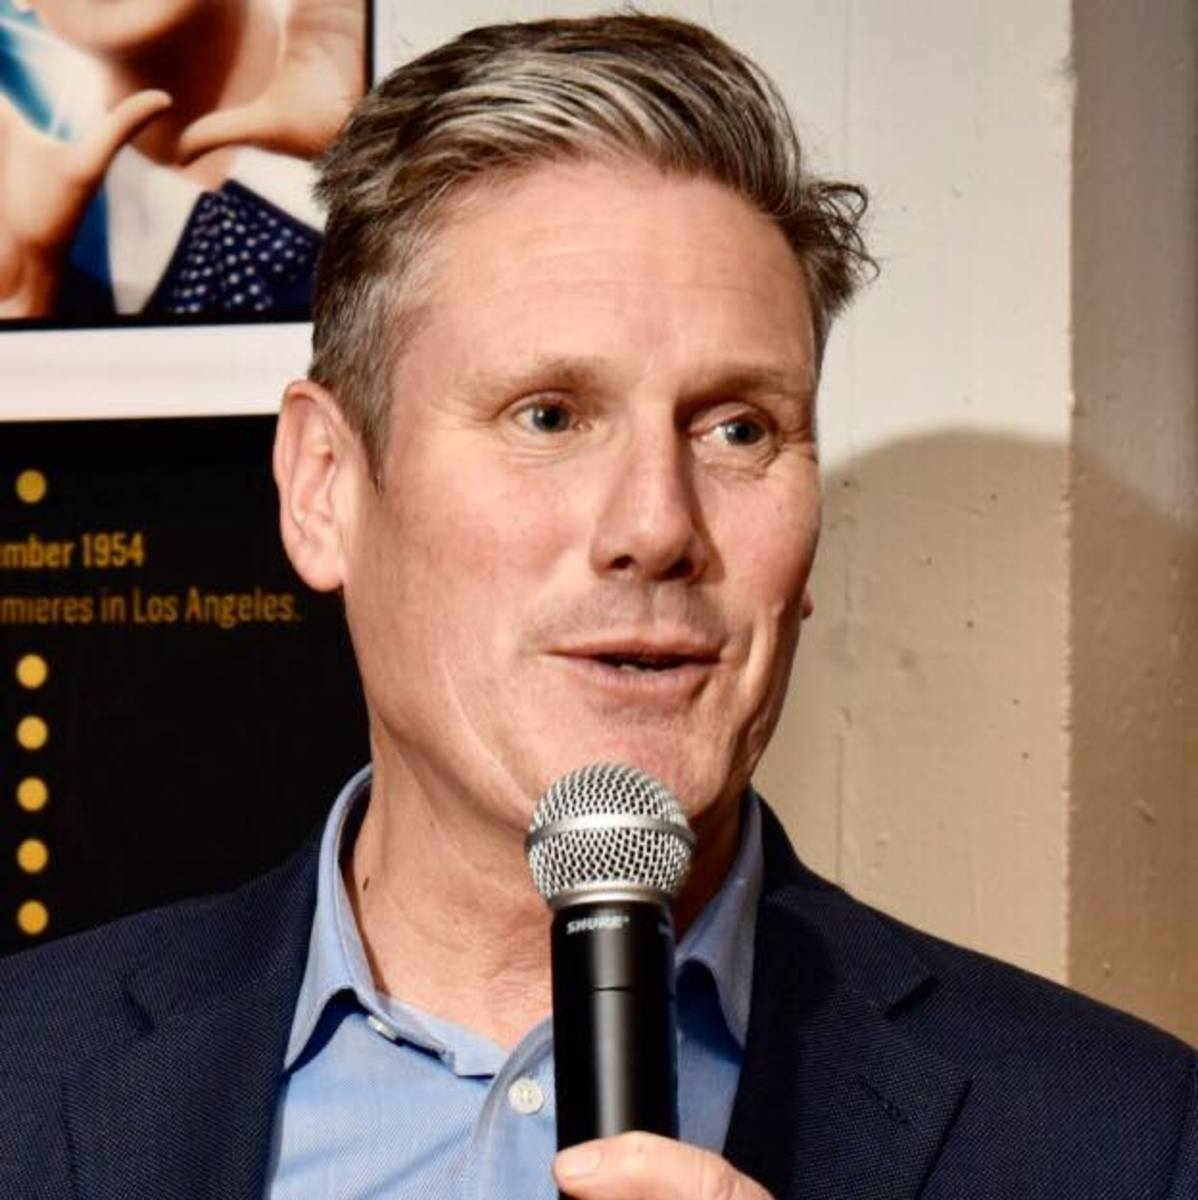 Keir Starmer: No Automatic Support for Government Anymore.